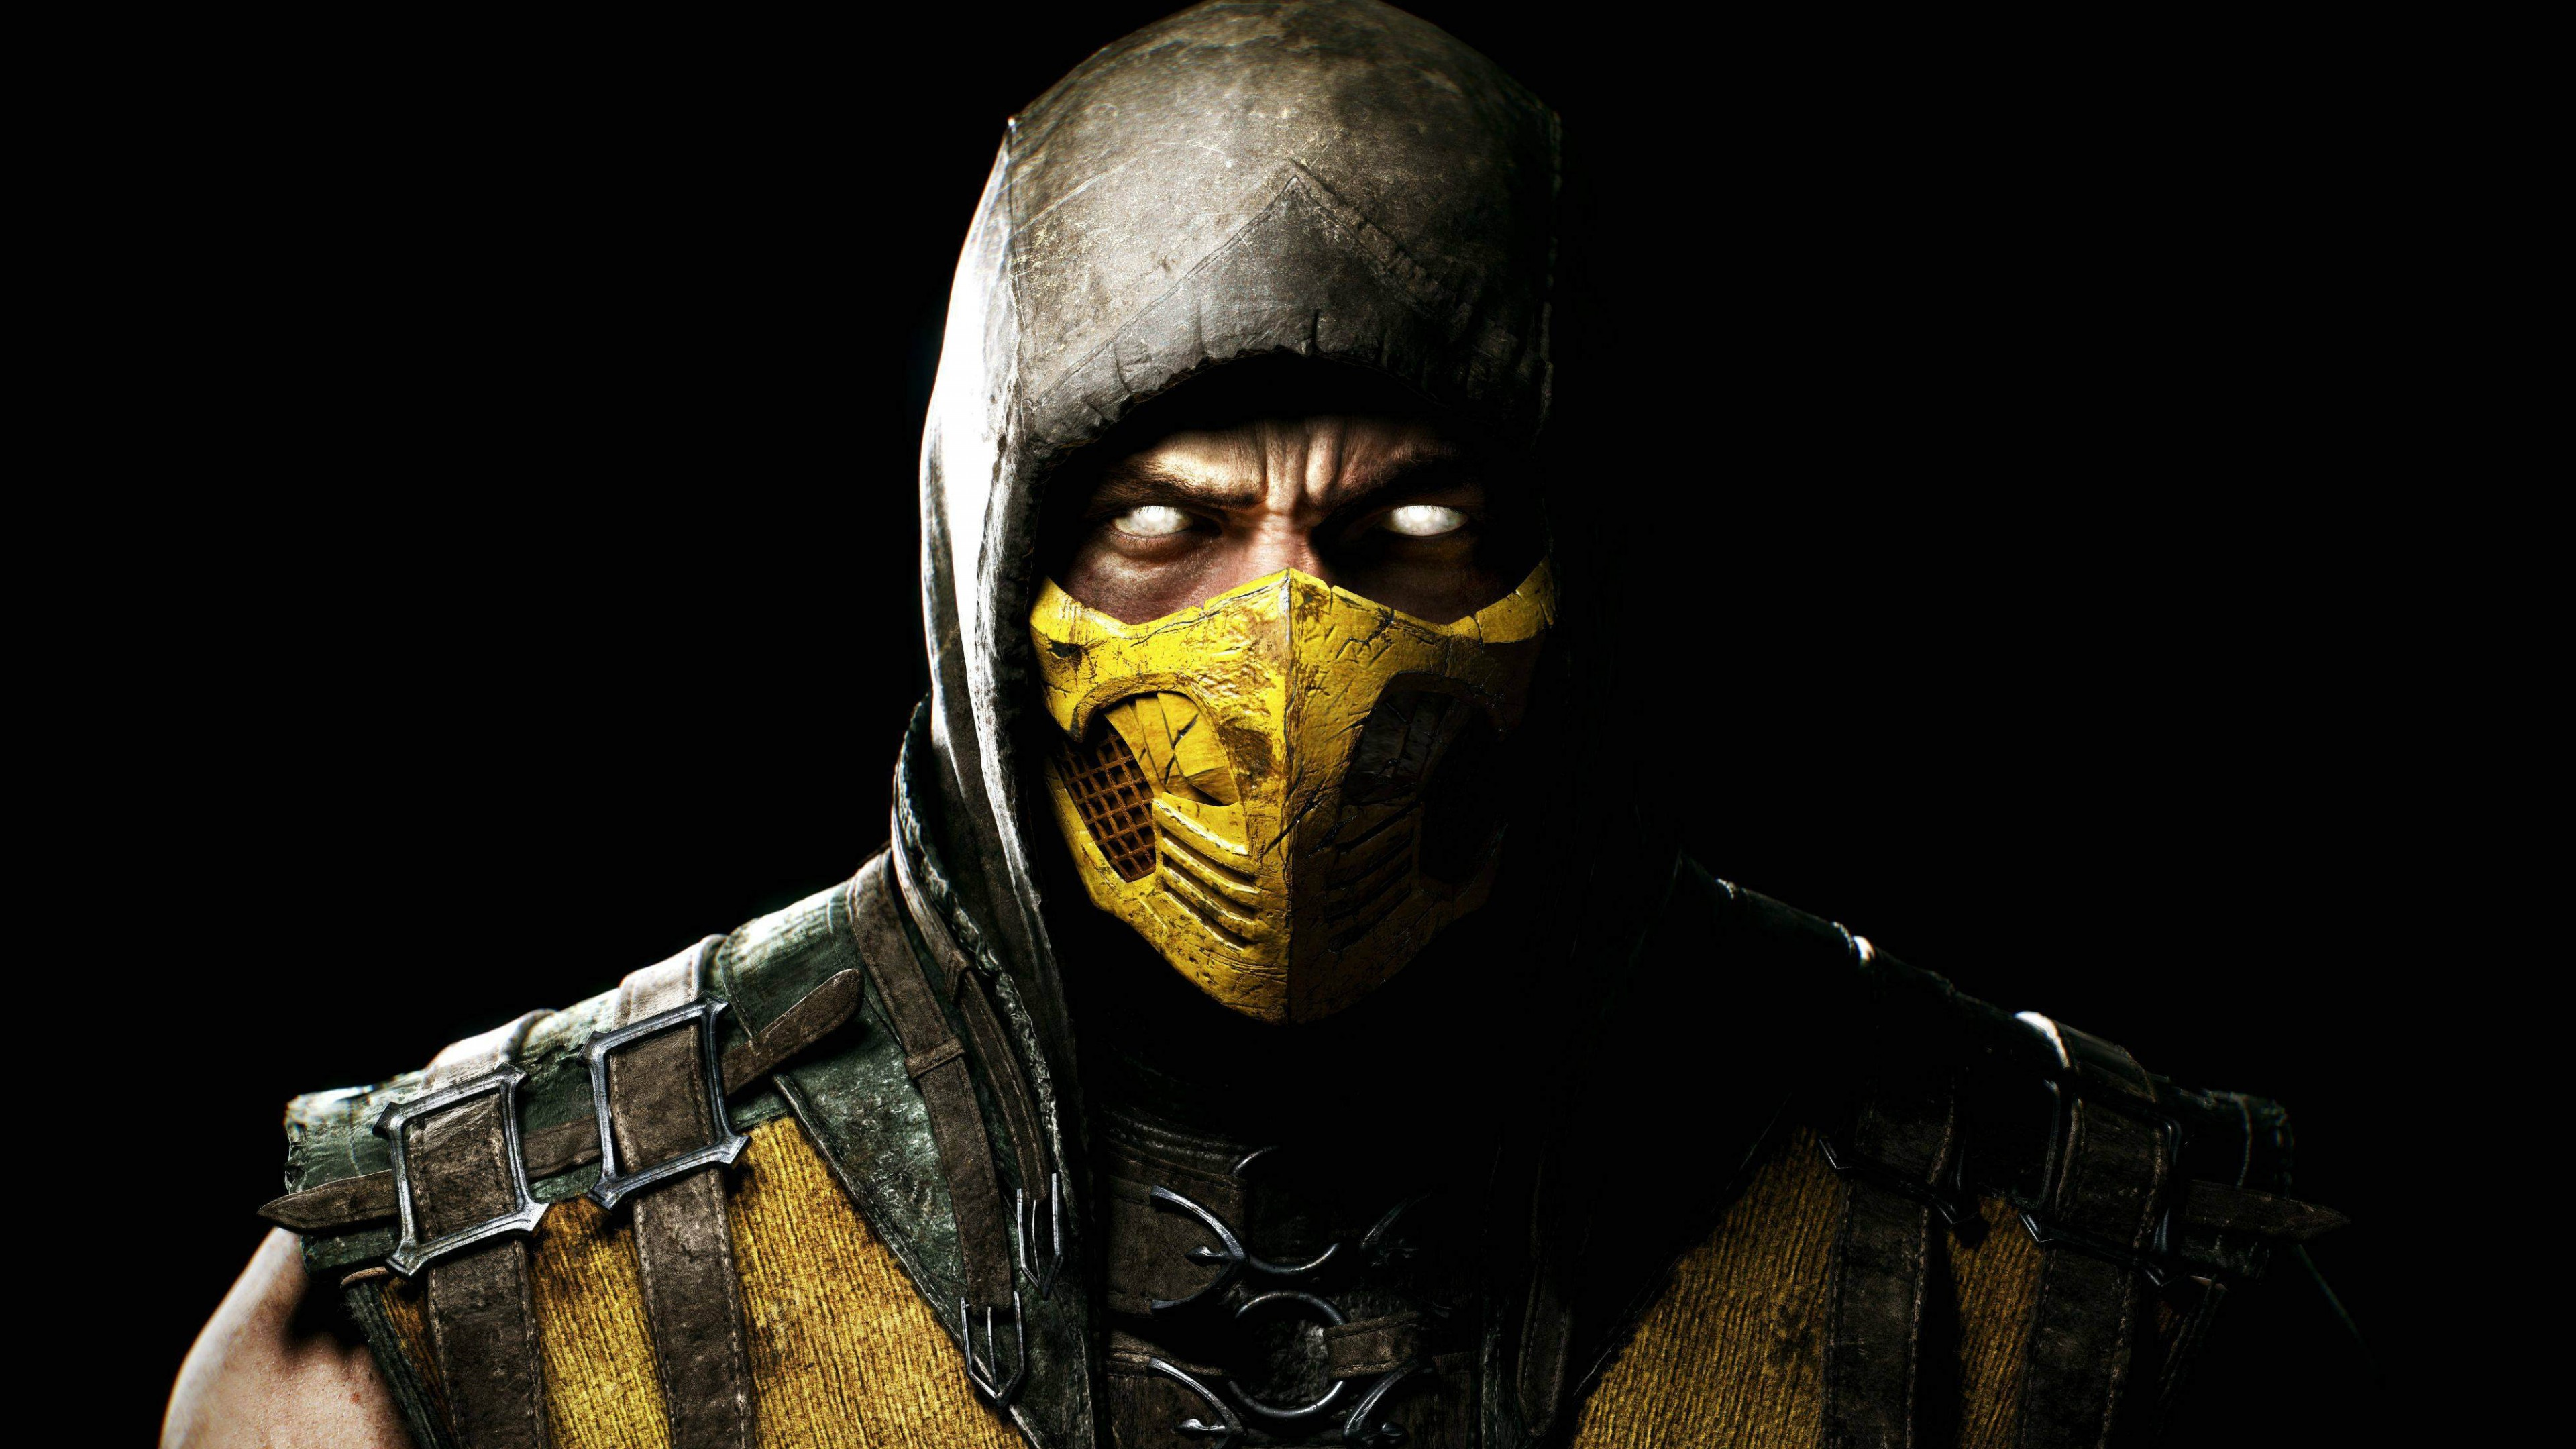 Mortal Kombat Xl Wallpaper: Kombat Wallpapers And Desktop Backgrounds Up To 8K